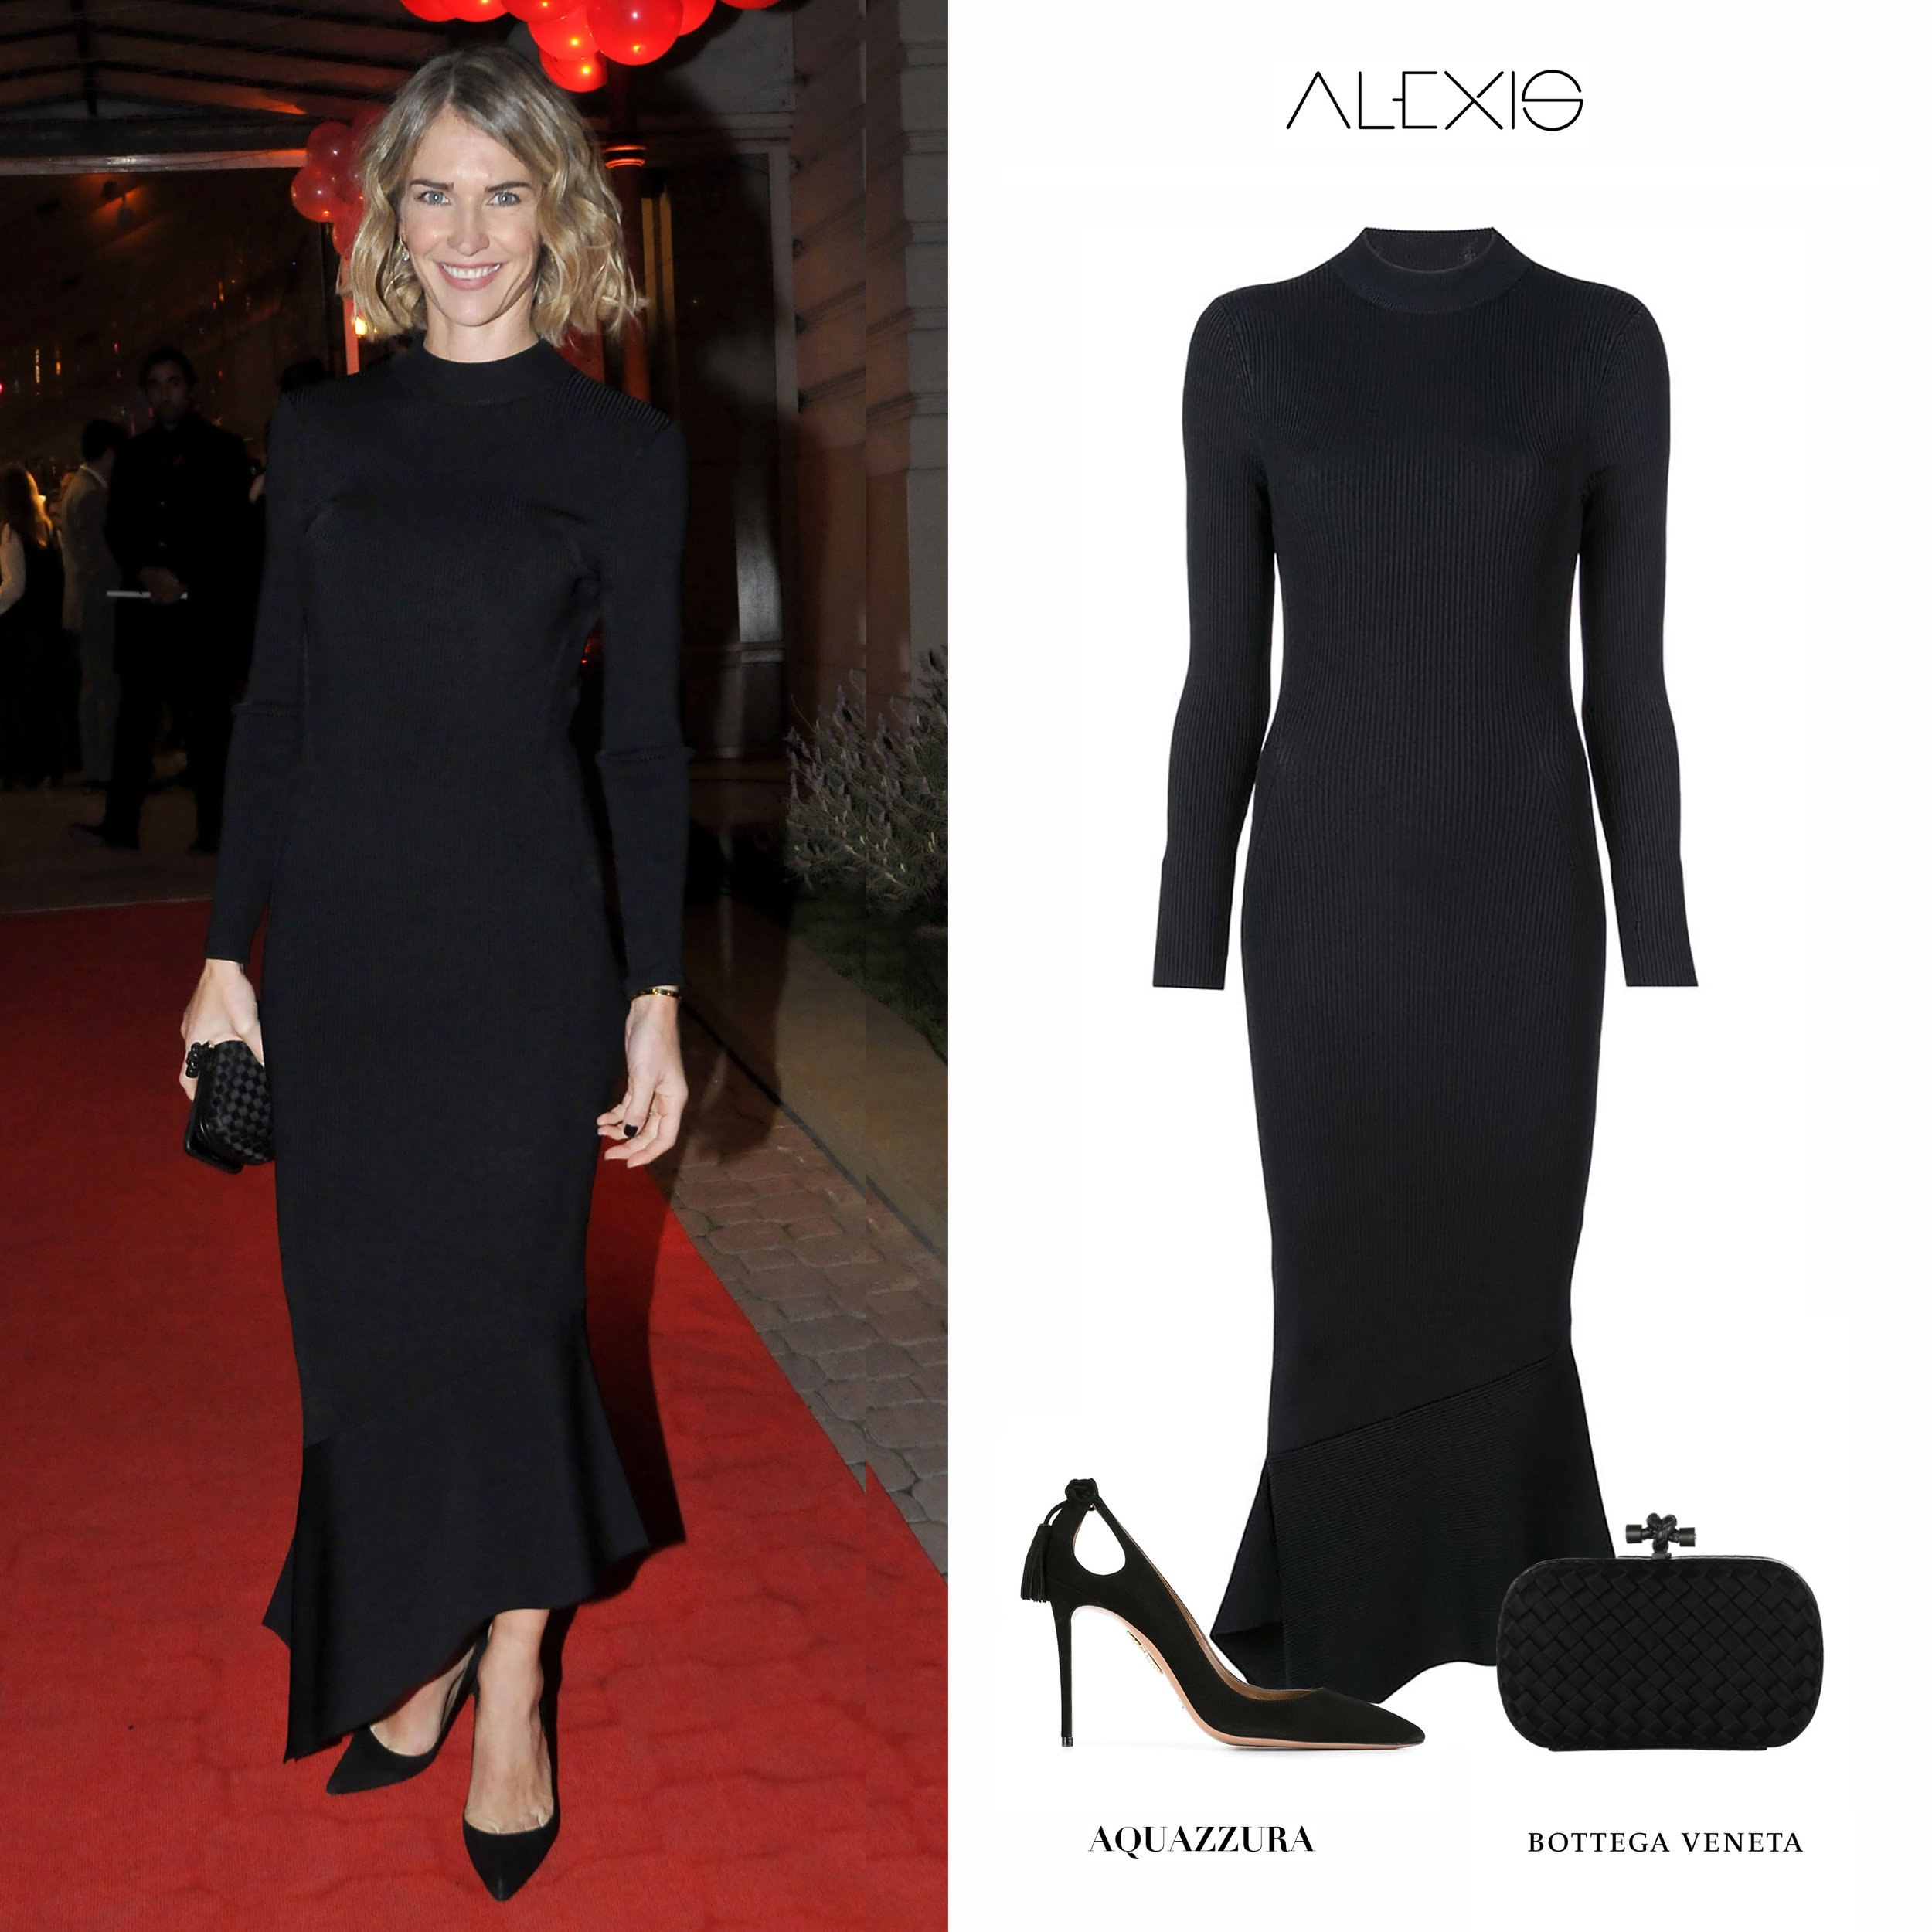 Julieta_Spina_Fundacion_Huesped_Vestido_Negro_Long_Sleeves_Black_Asymmetric_Dress_Alexis_Zapatos_Forever_Marilyn_Aquazzura_Shoes_Pumps_Bottega_Veneta_Intrecciato_Knot_bag_Clutch_Cartera.jpg